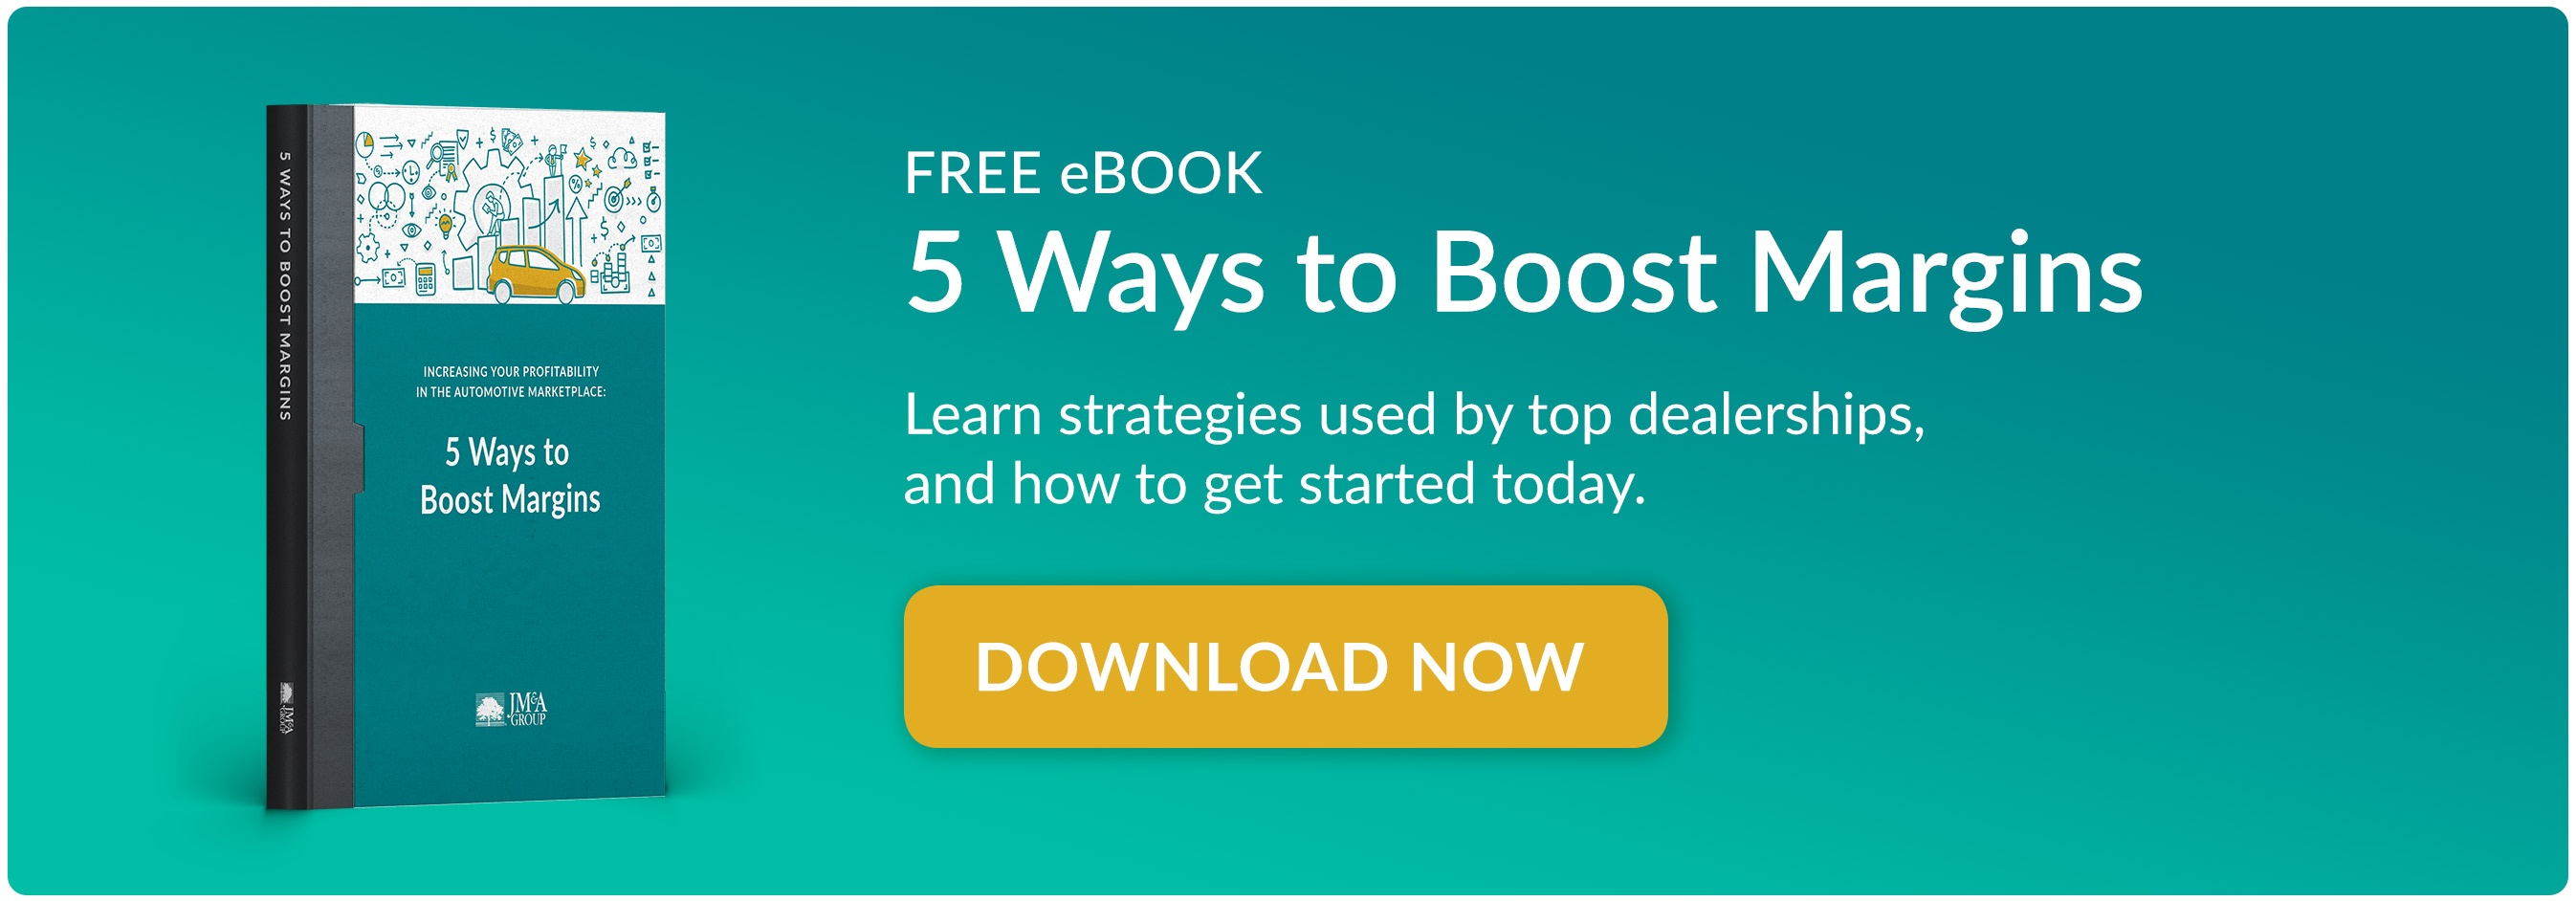 Free eBook - 5 Ways to Boost Margins